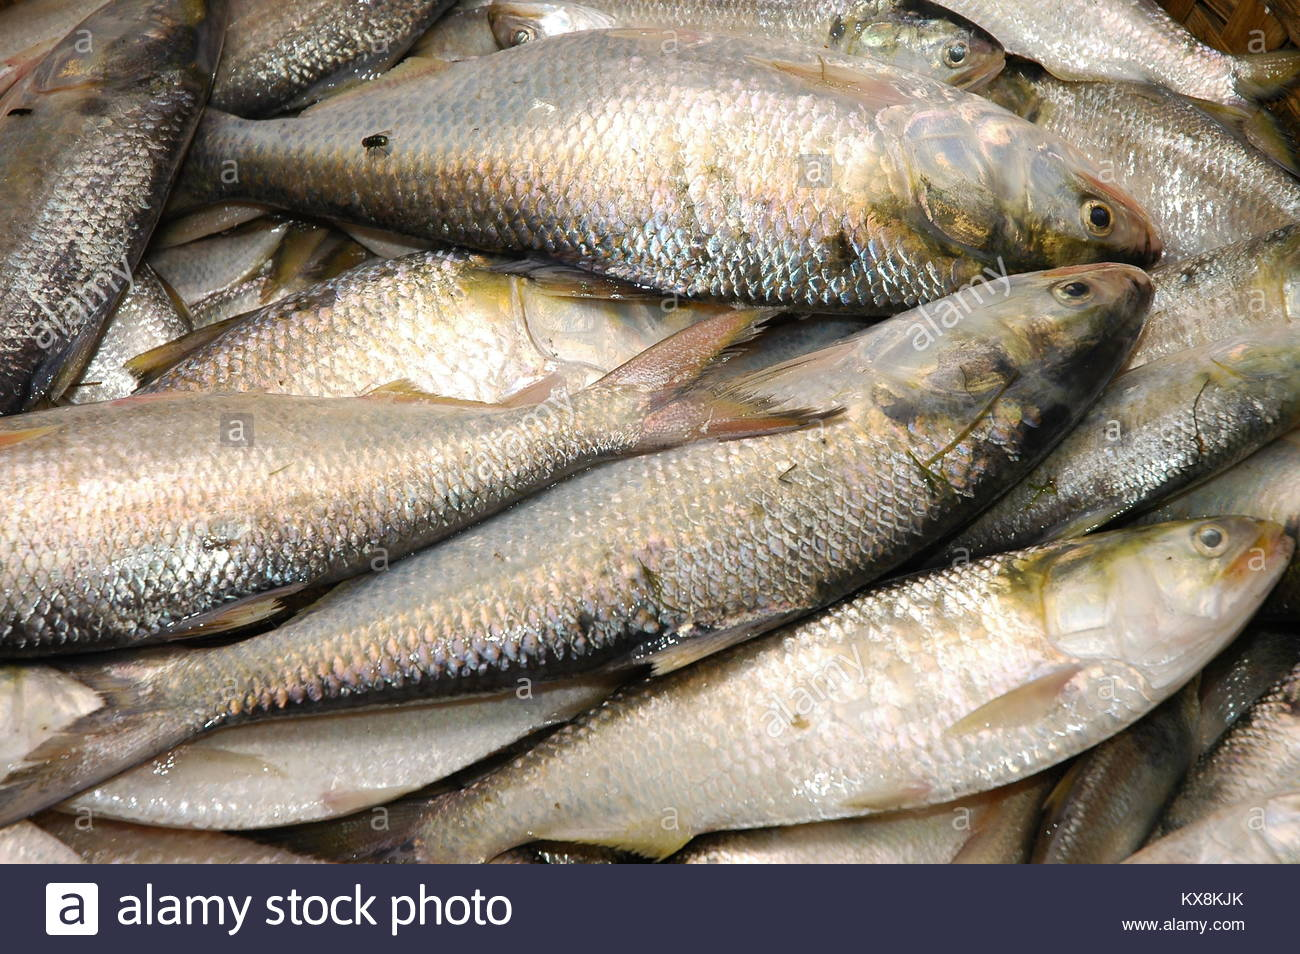 Bangladesh's national fish Ilish is a very popular fish in South Asia, Chandpur, Chittagong, Bangladesh - Stock Image